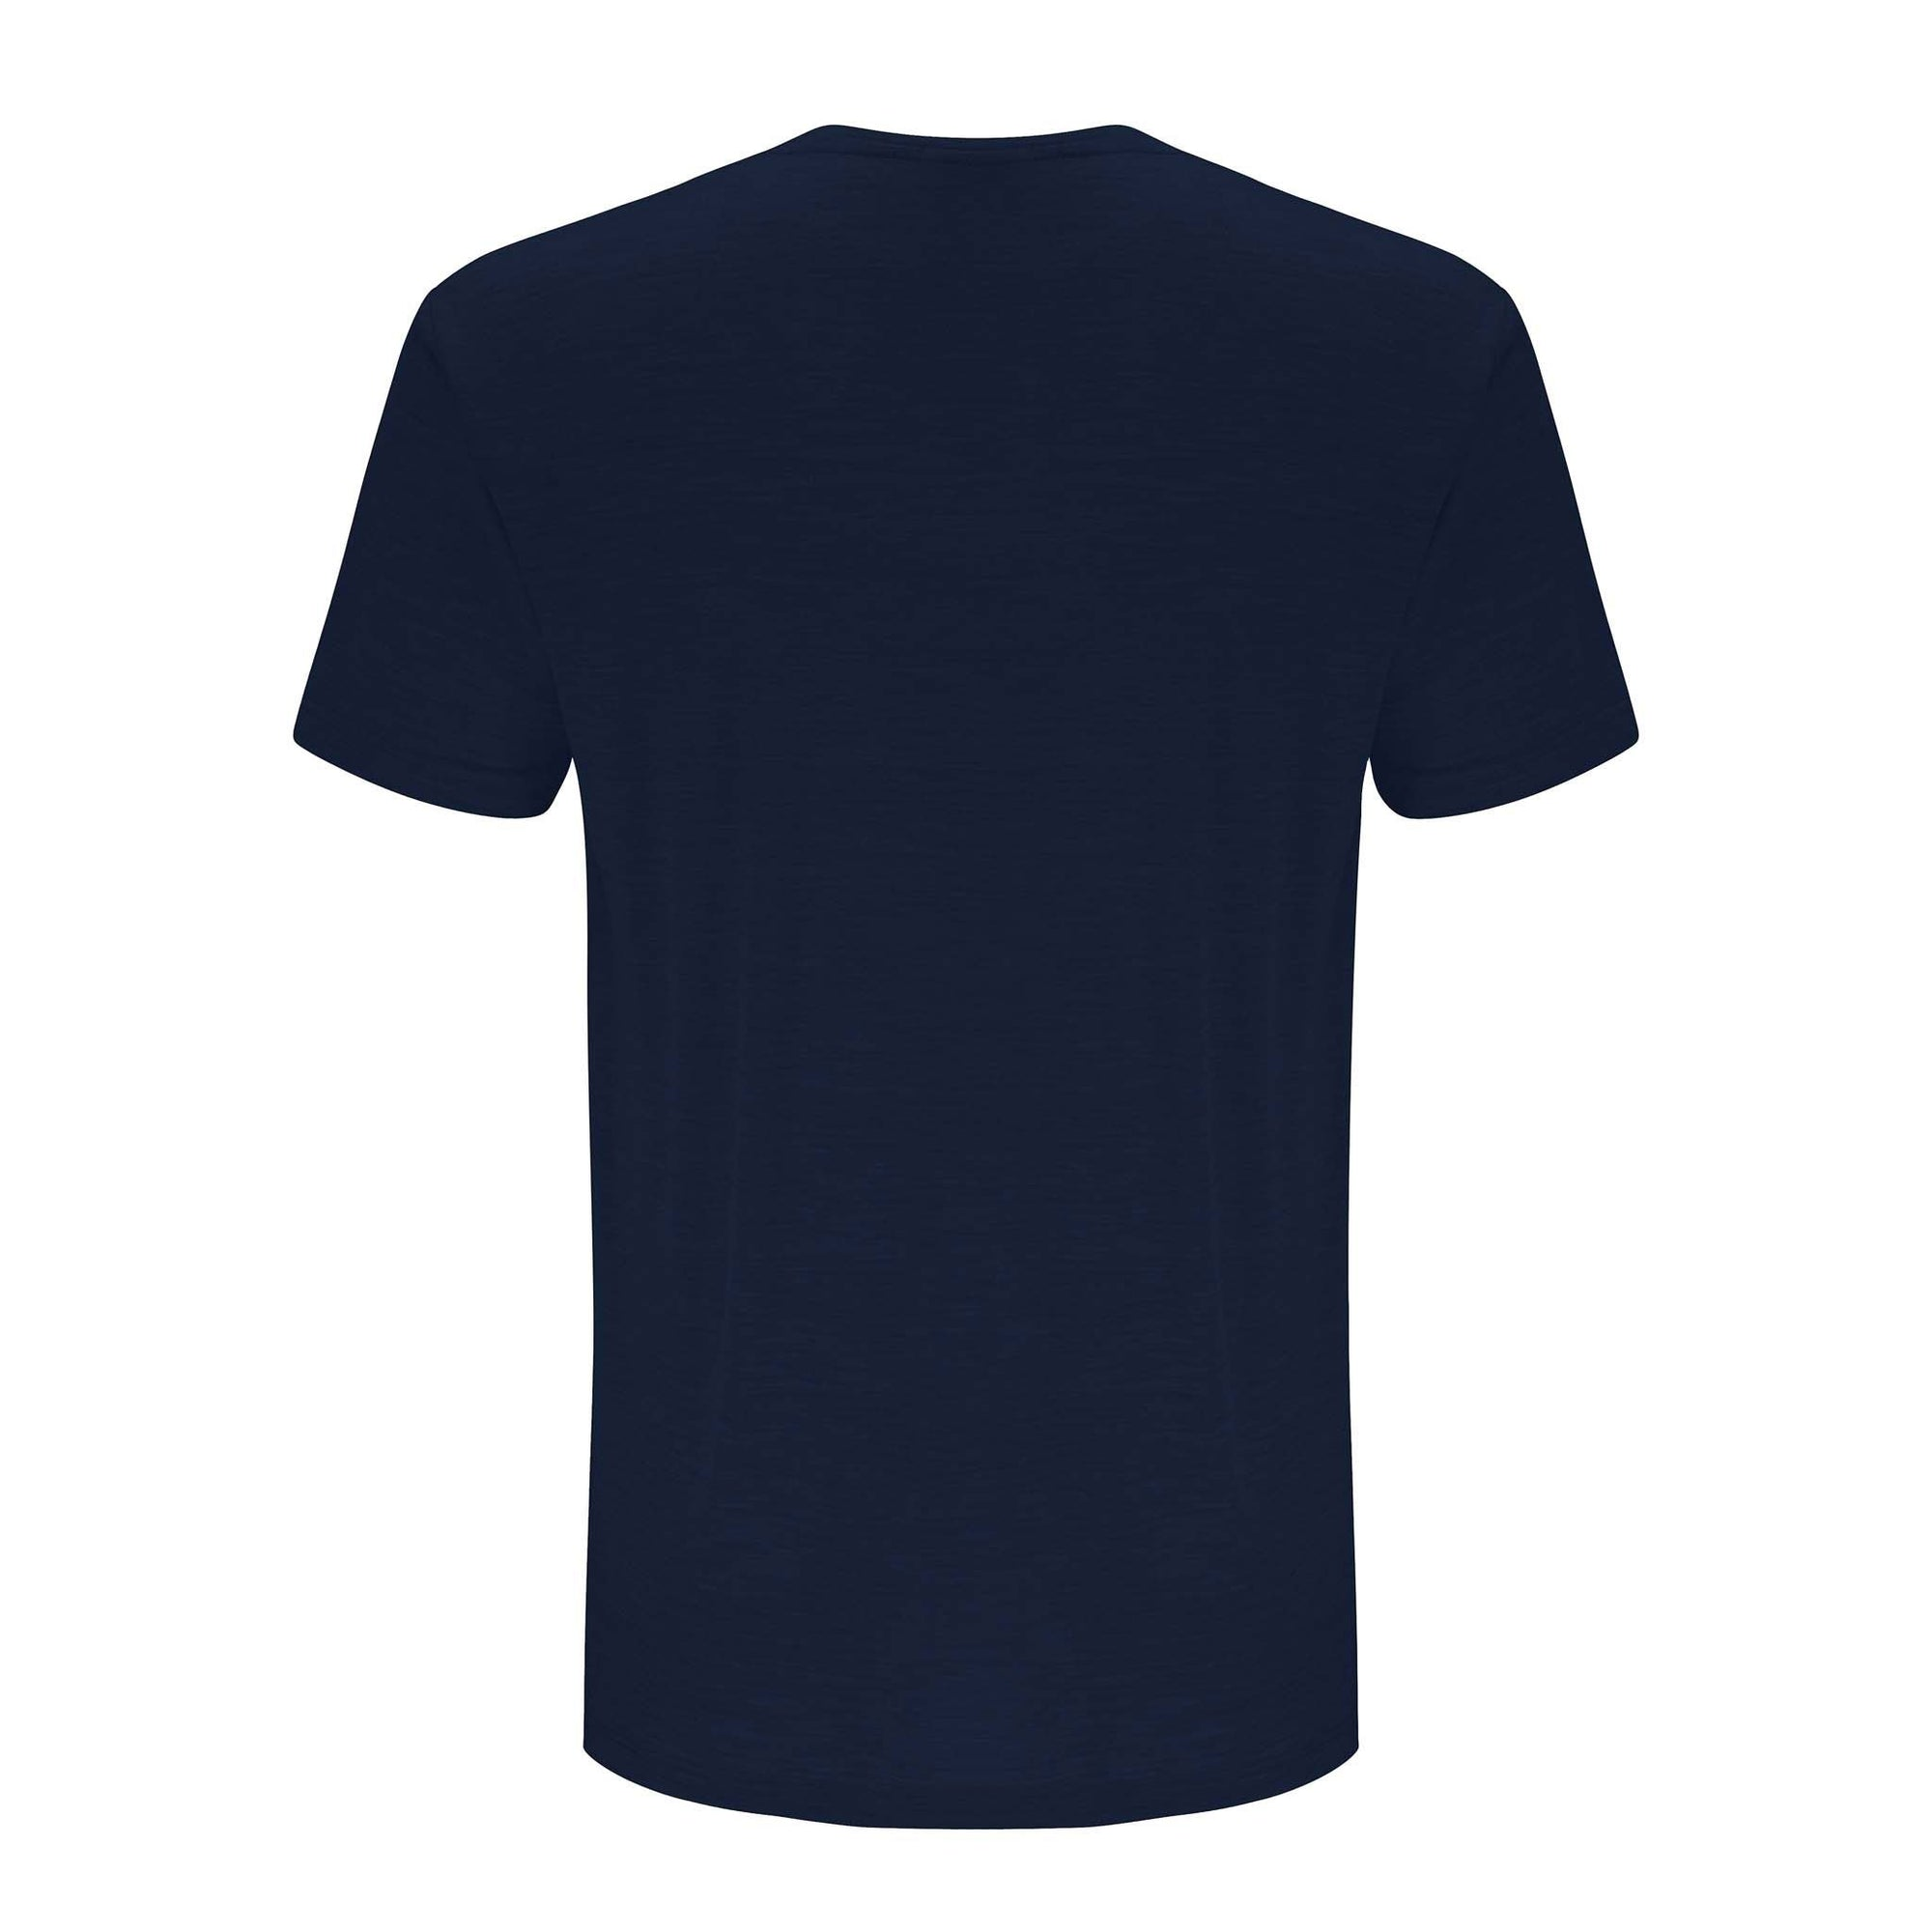 Tricou barbati We Norwegians lână merinos - BaseOne Navy Blue-We Norwegians-HipHip.ro